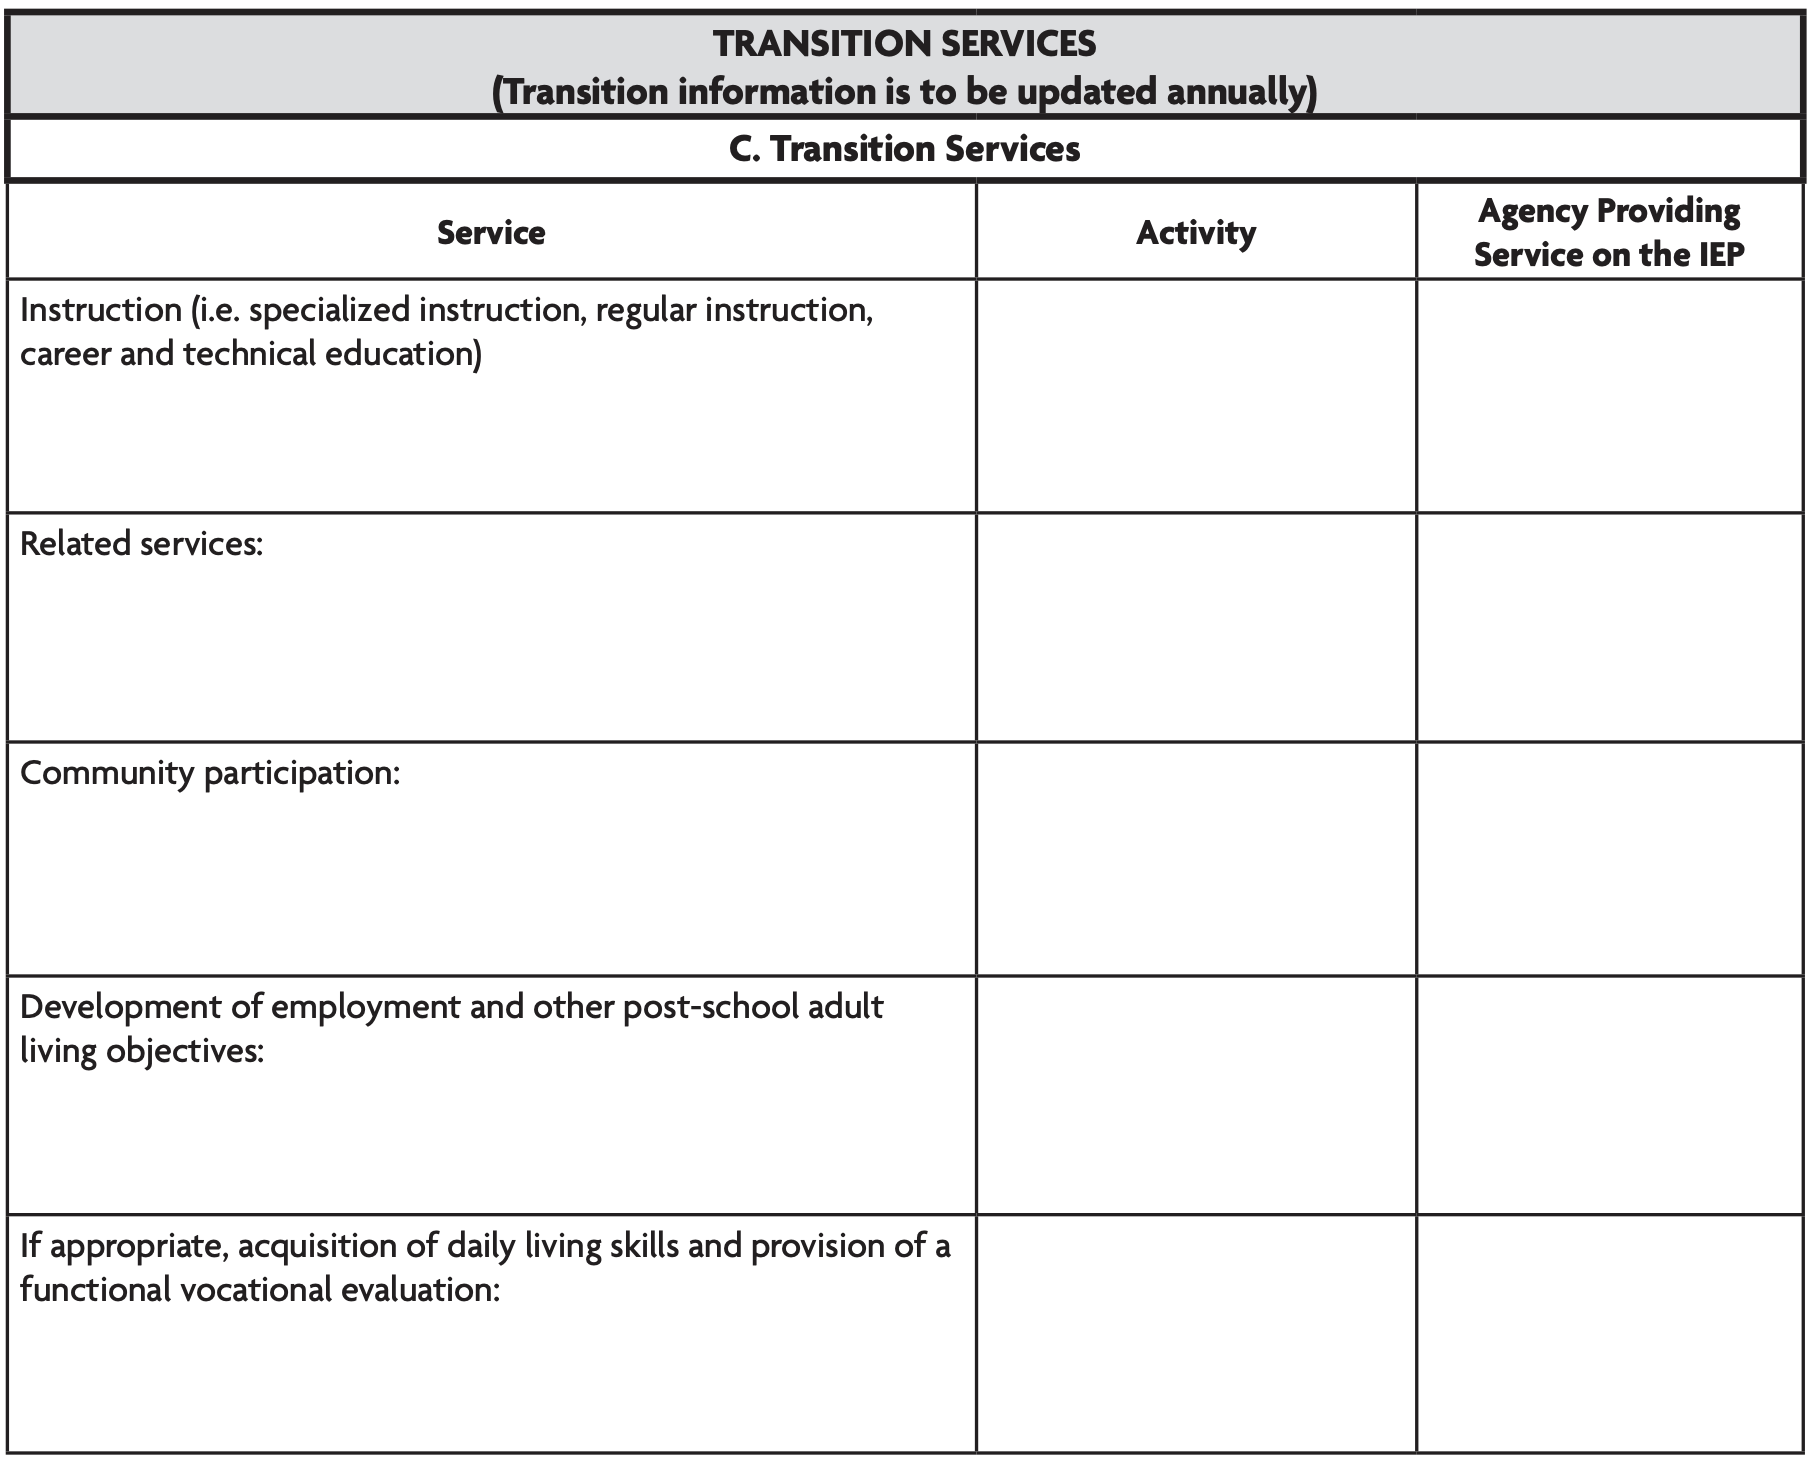 Image is a table made to be filled in with information about transition services, activity, and agency providing the service. Services include: instruction (i.e. specialized instruction, regular instruction, career and technical education), related services, community participation, development of employment and other post-school adult living objectives, and if appropriate, acquisition of daily living skills and provision of a functional vocational evaluation.